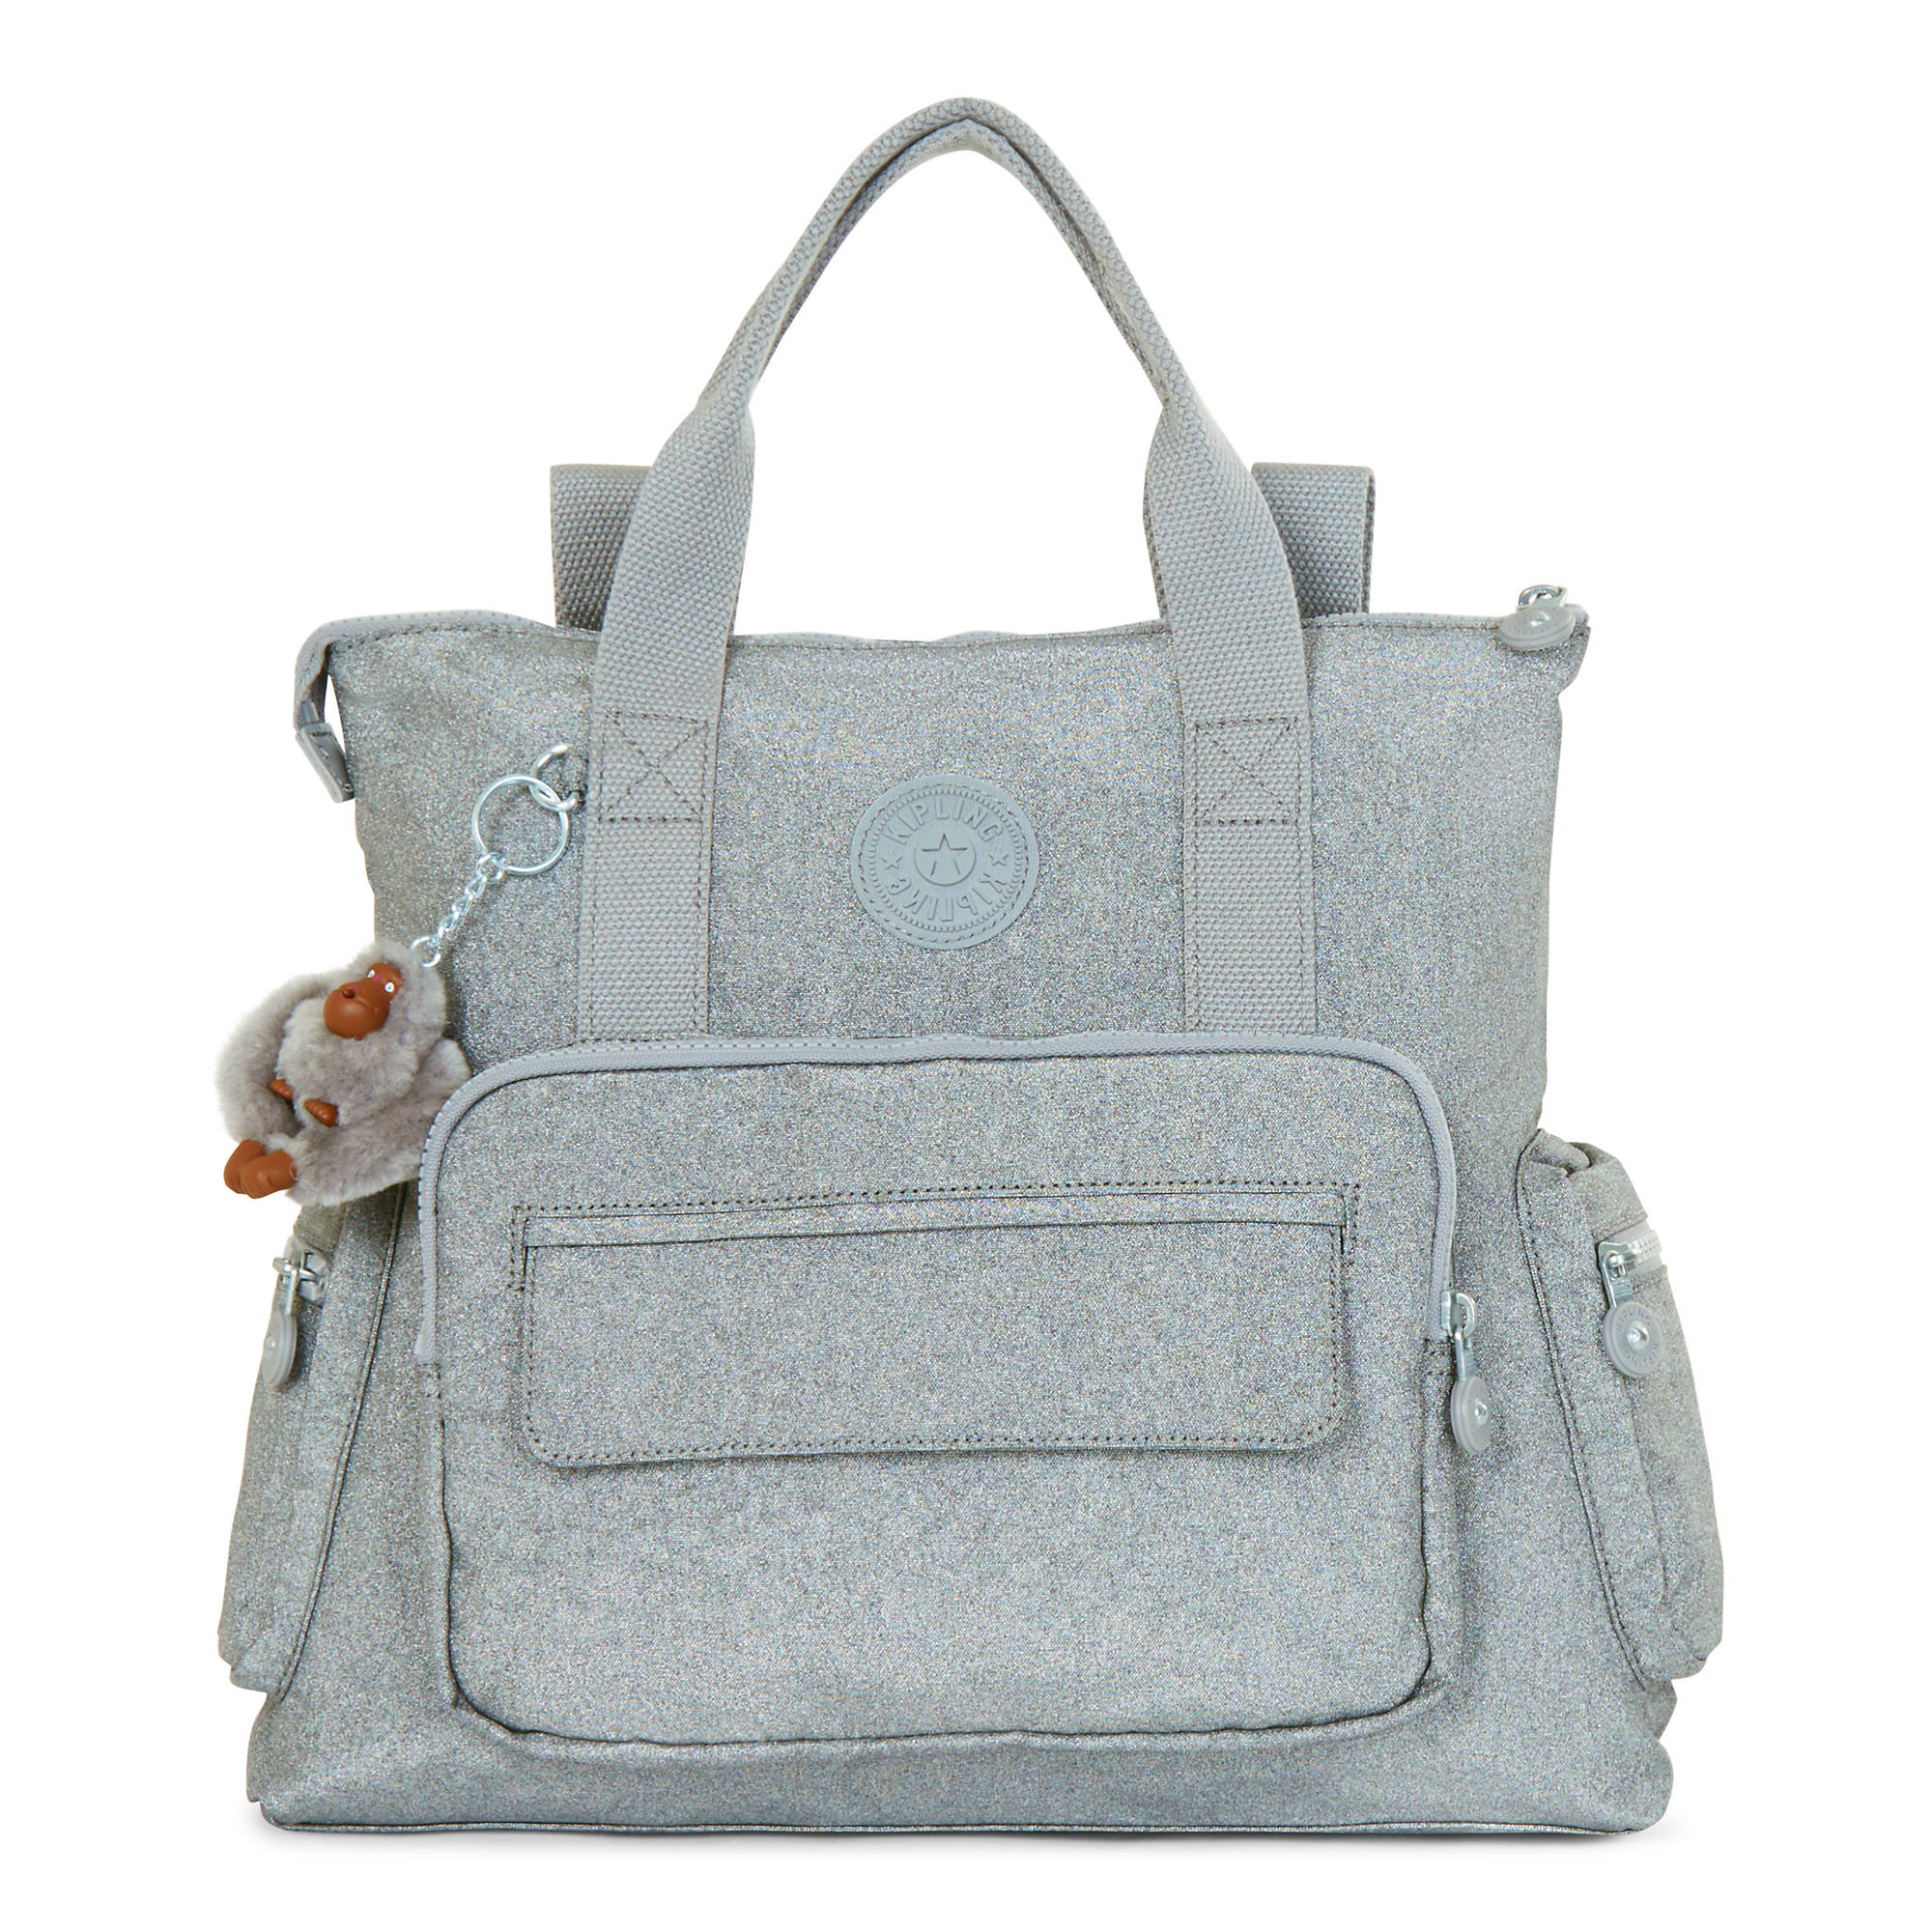 Leather quilted handbags and purses - Alvy 2 In 1 Convertible Metallic Tote Bag Backpack